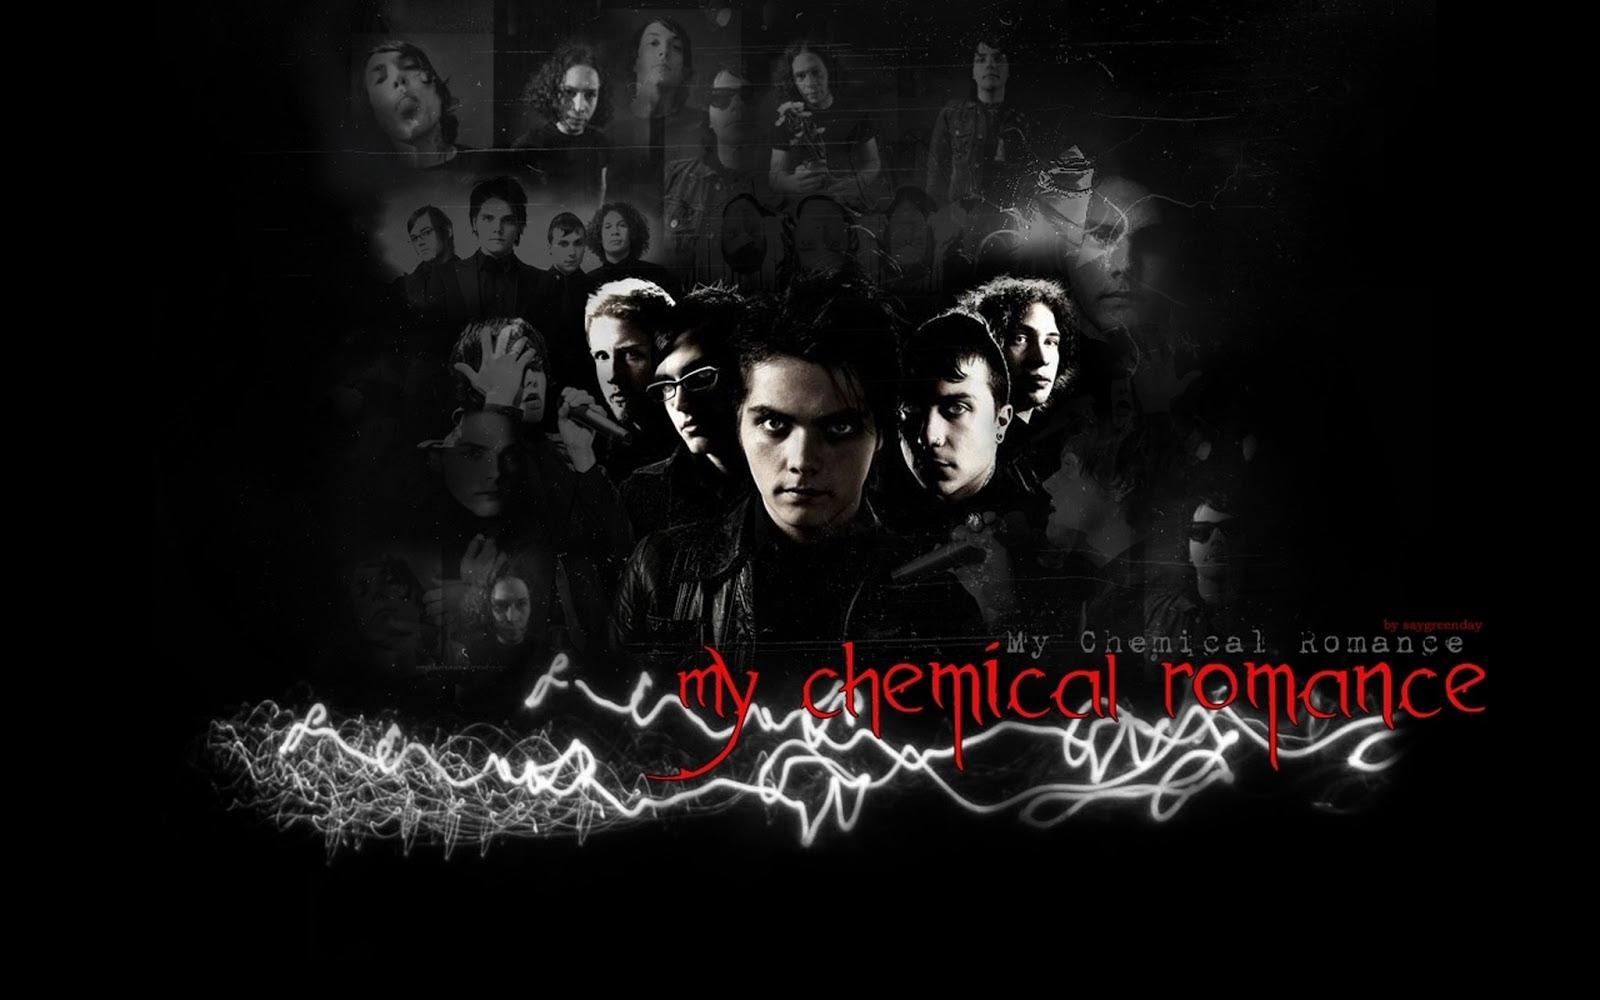 My Chemical Romance Wallpaper 2 My Chemical Romance Wallpaper